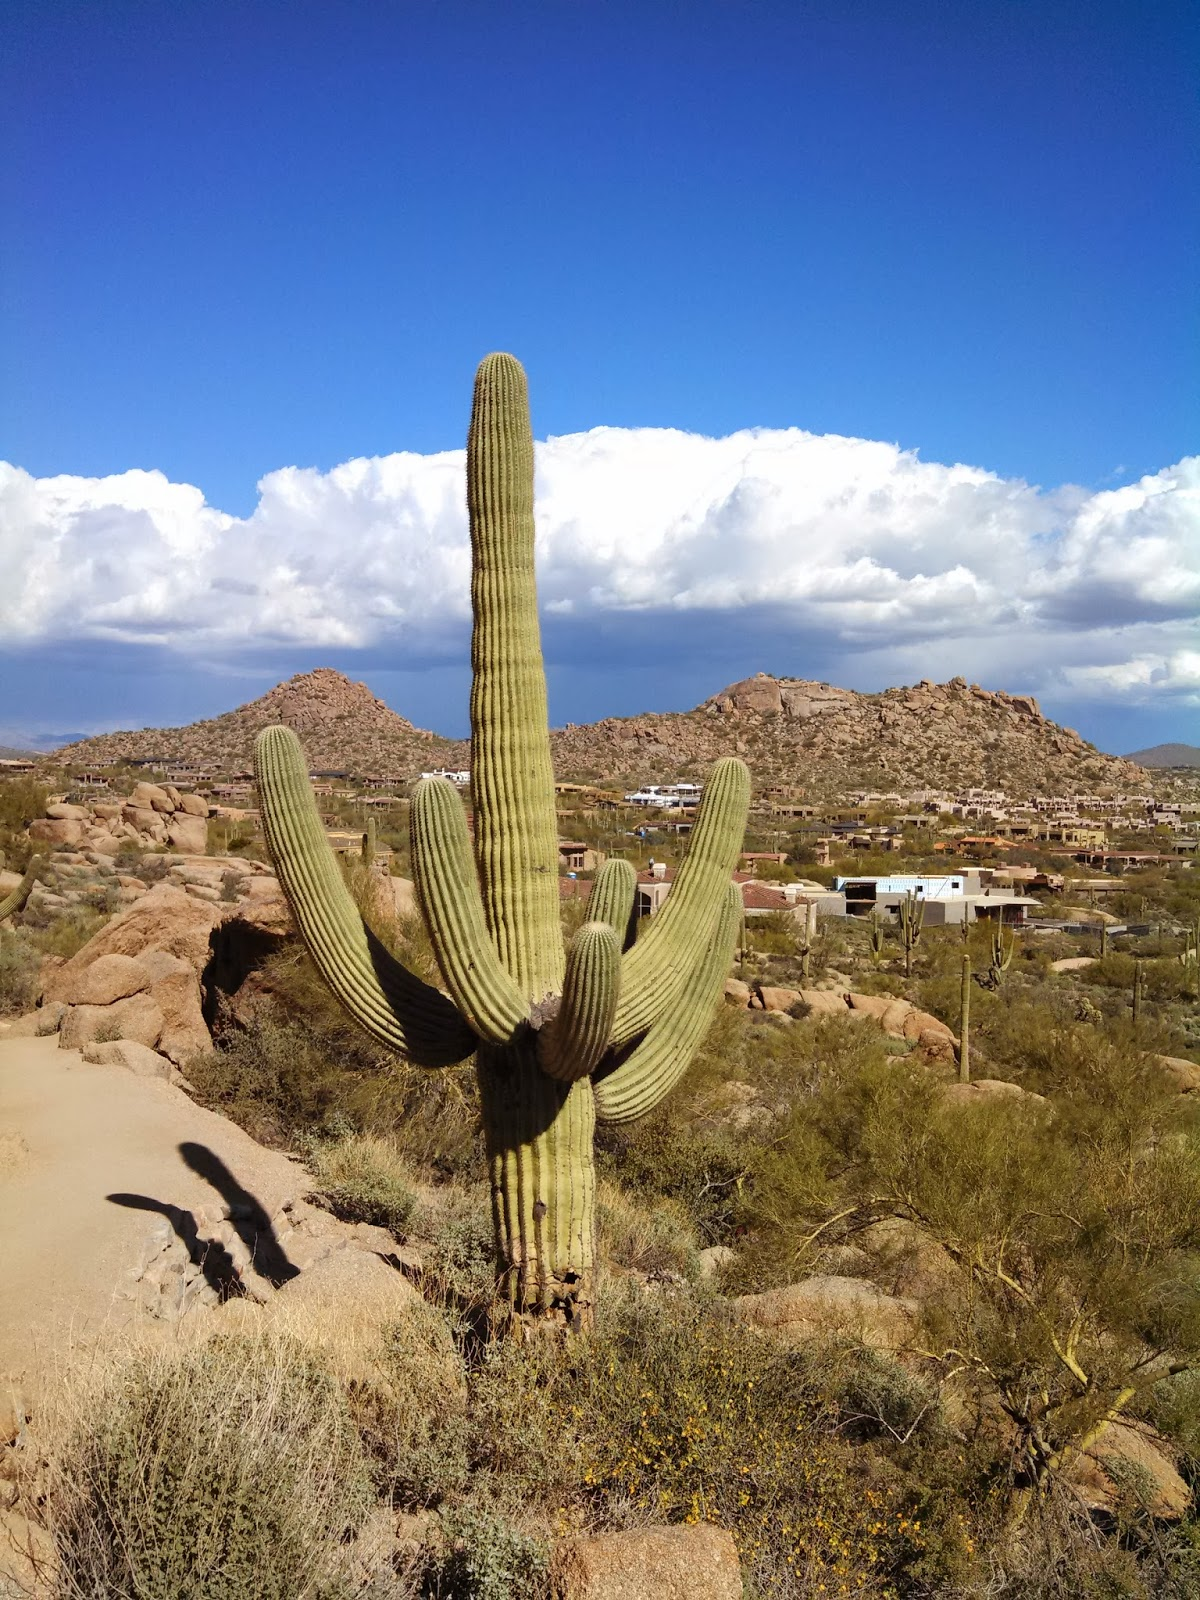 Saguaro can grow to be over 60 feet tall and can weigh, when fully hydrated, between 3200 to 4800 pounds. They have a shallow root system, with only one deep root (the tap root) that goes down about 2 feet. (Photo by Kristy McCaffrey, author of Into the Land of Shadows.)